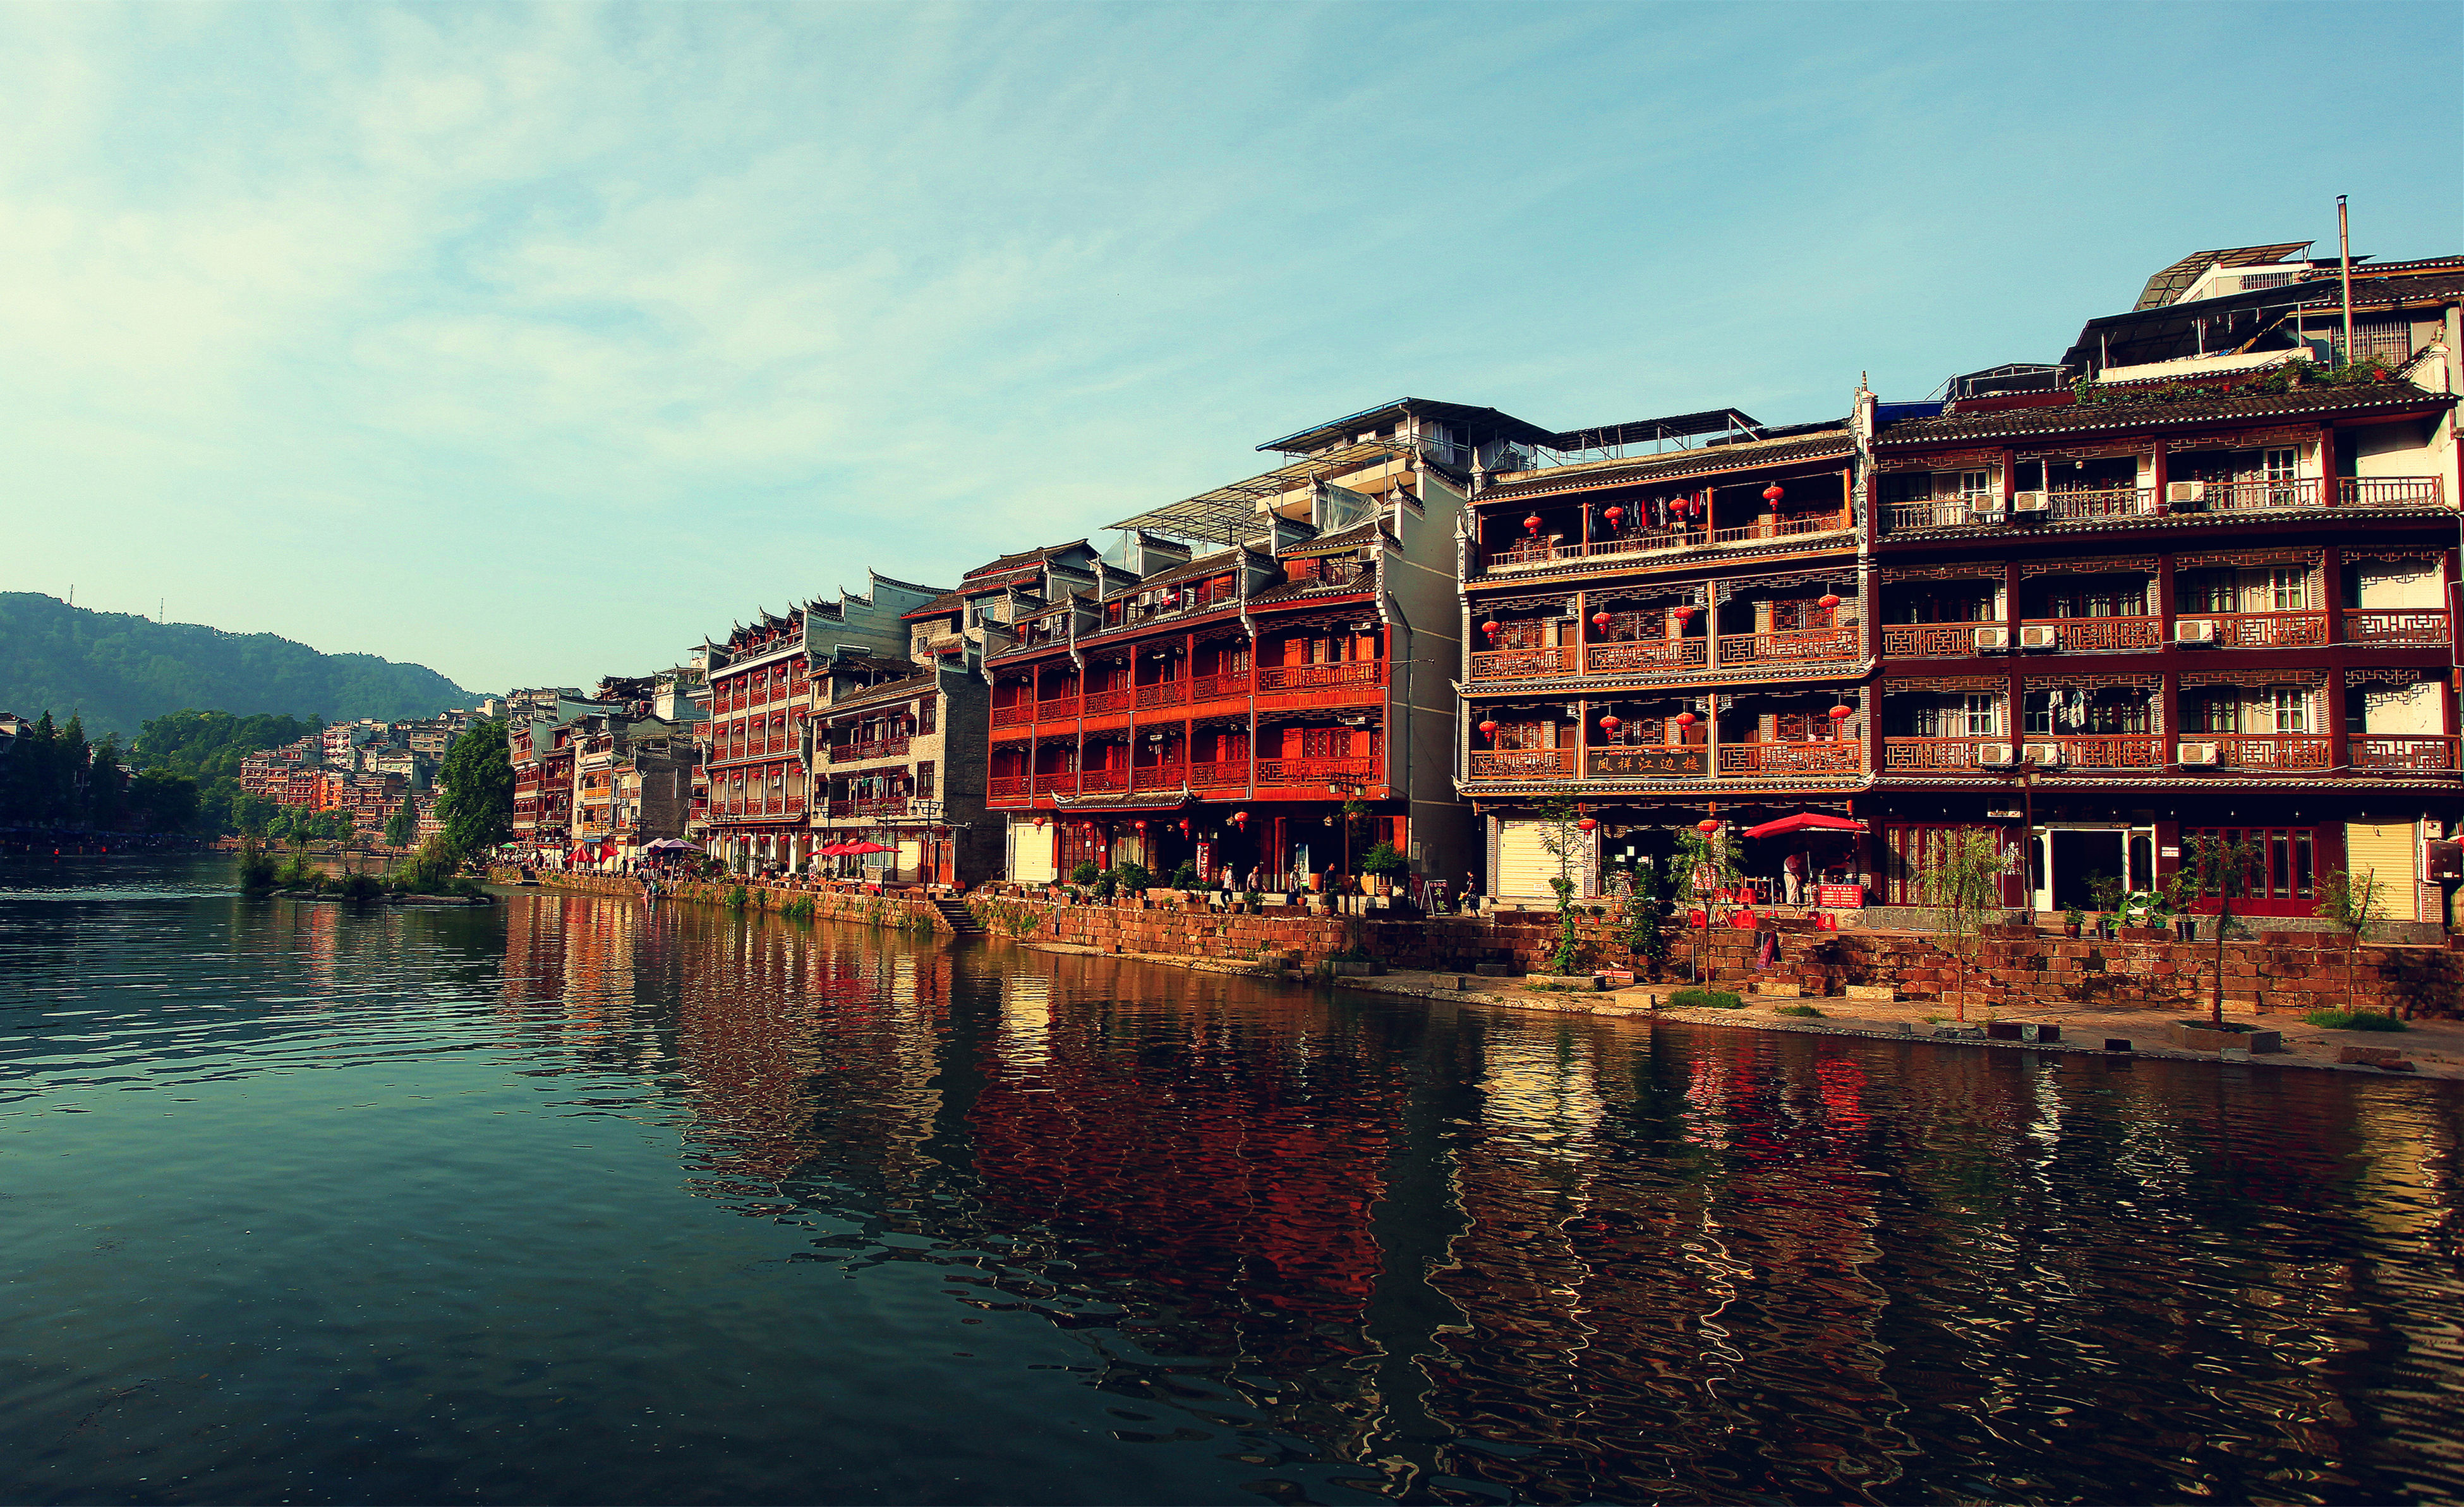 architecture, building exterior, built structure, water, waterfront, residential structure, reflection, sky, canal, residential building, river, house, city, building, residential district, outdoors, transportation, town, day, no people